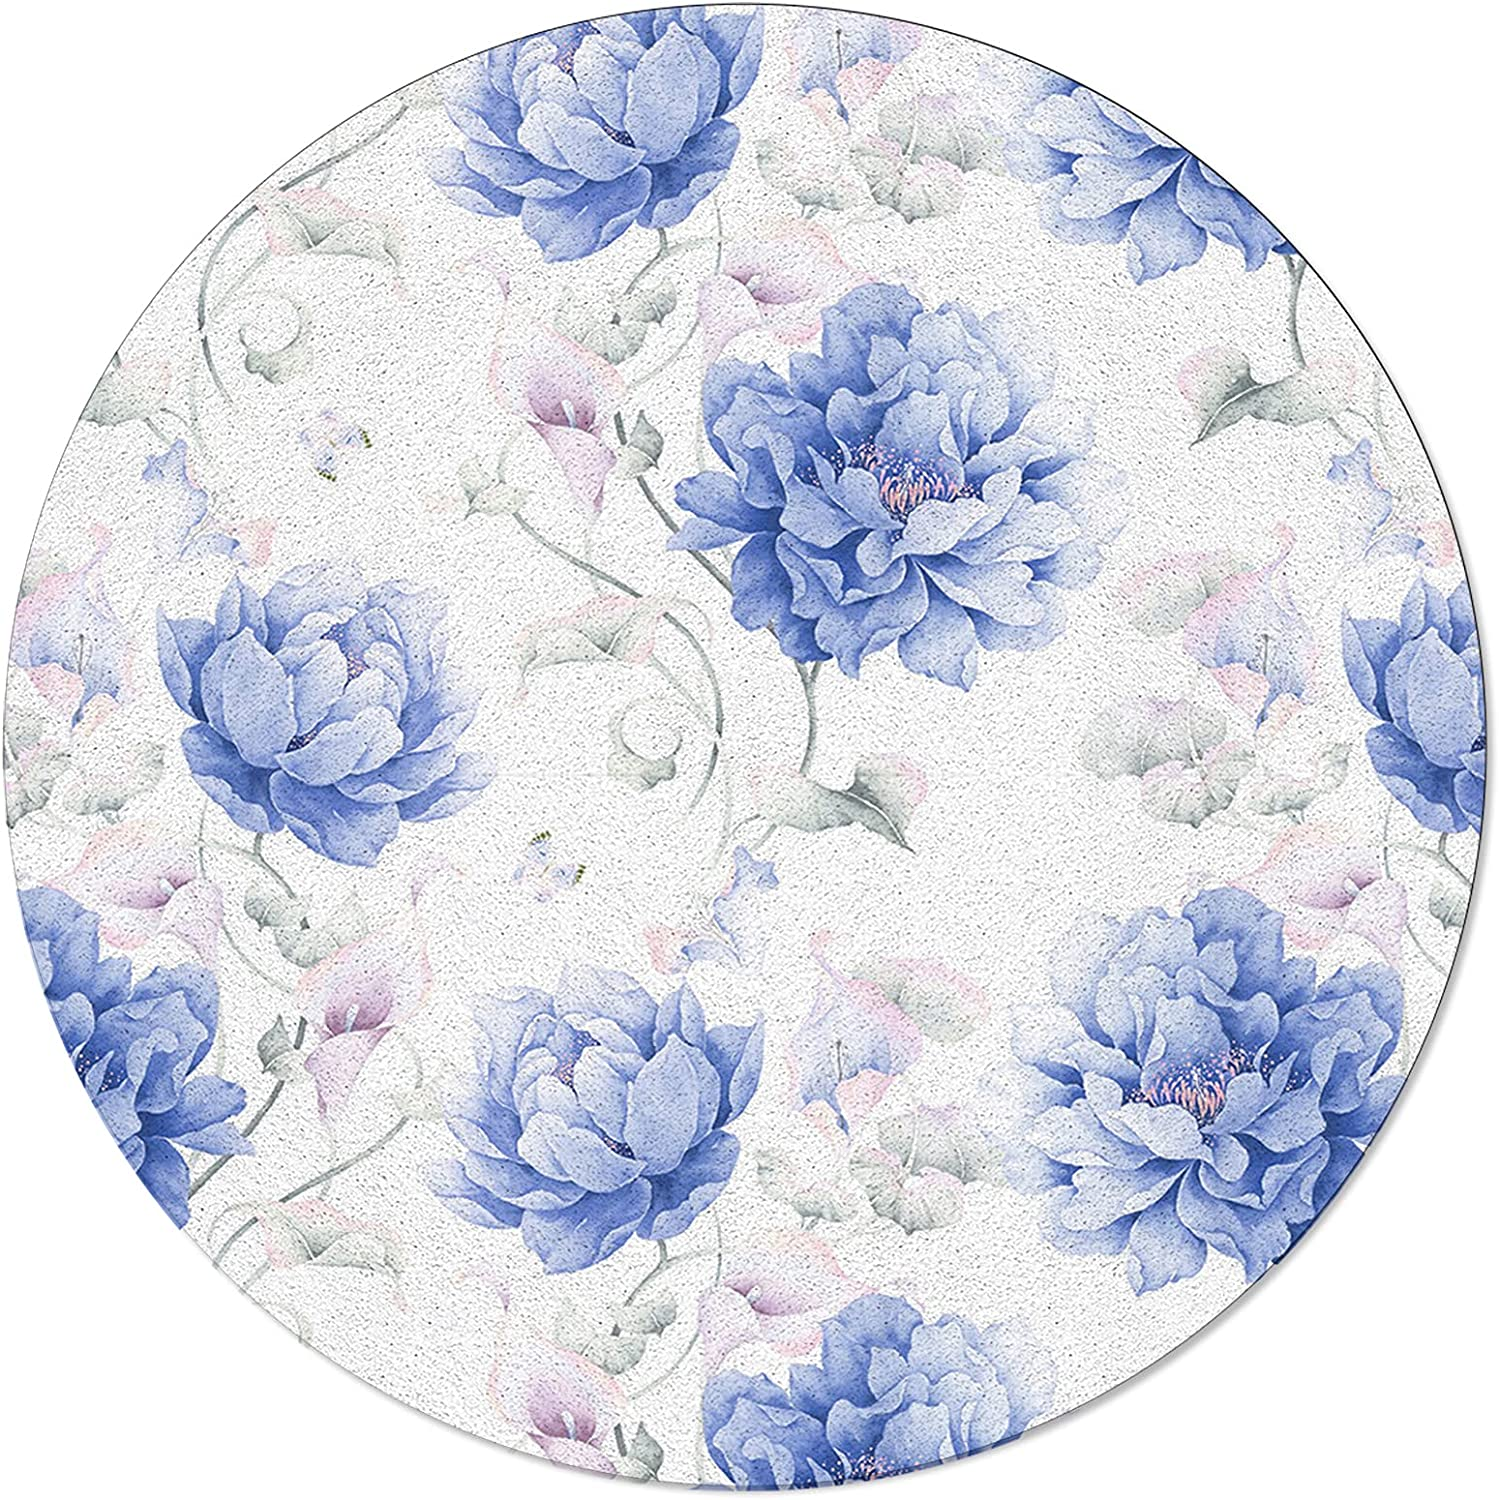 ARTSHOWING Al sold out. Flowers Round Max 74% OFF Area Rug Soft Non-Slip Floor Carpe 3ft